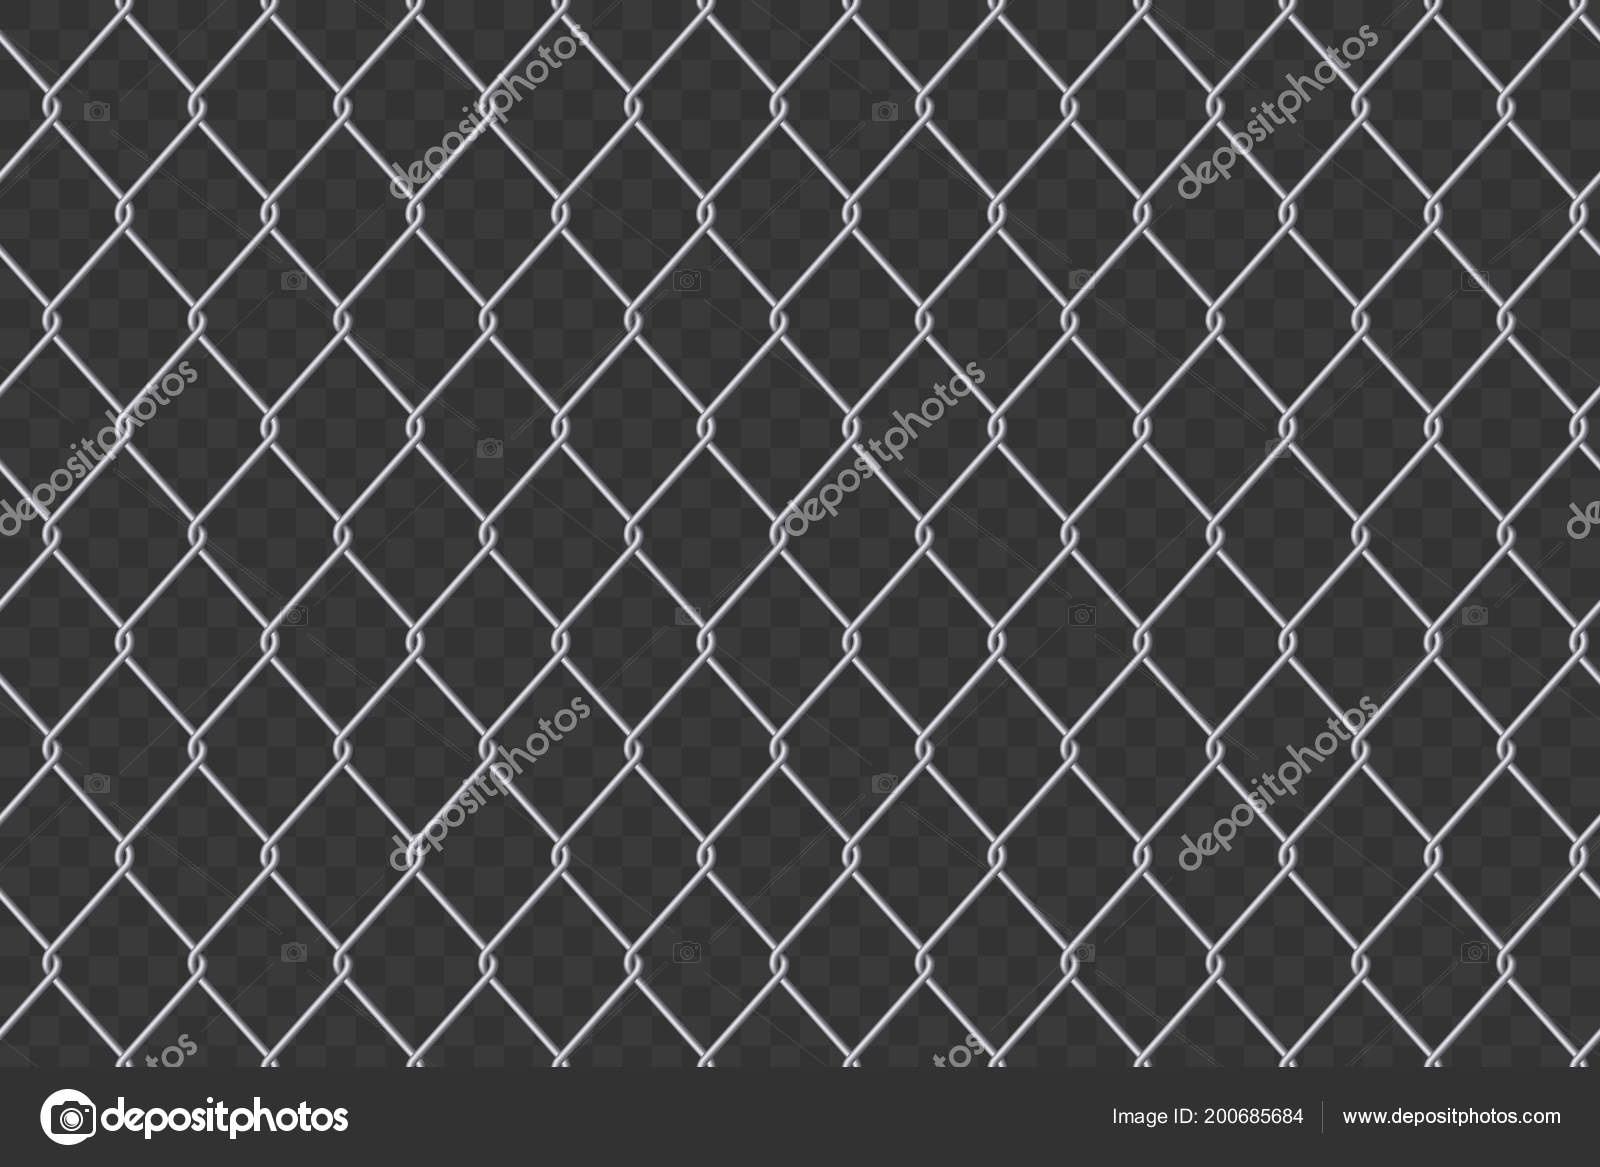 Creative Vector Ilration Of Chain Link Fence Wire Mesh Steel Metal Isolated On Transpa Background